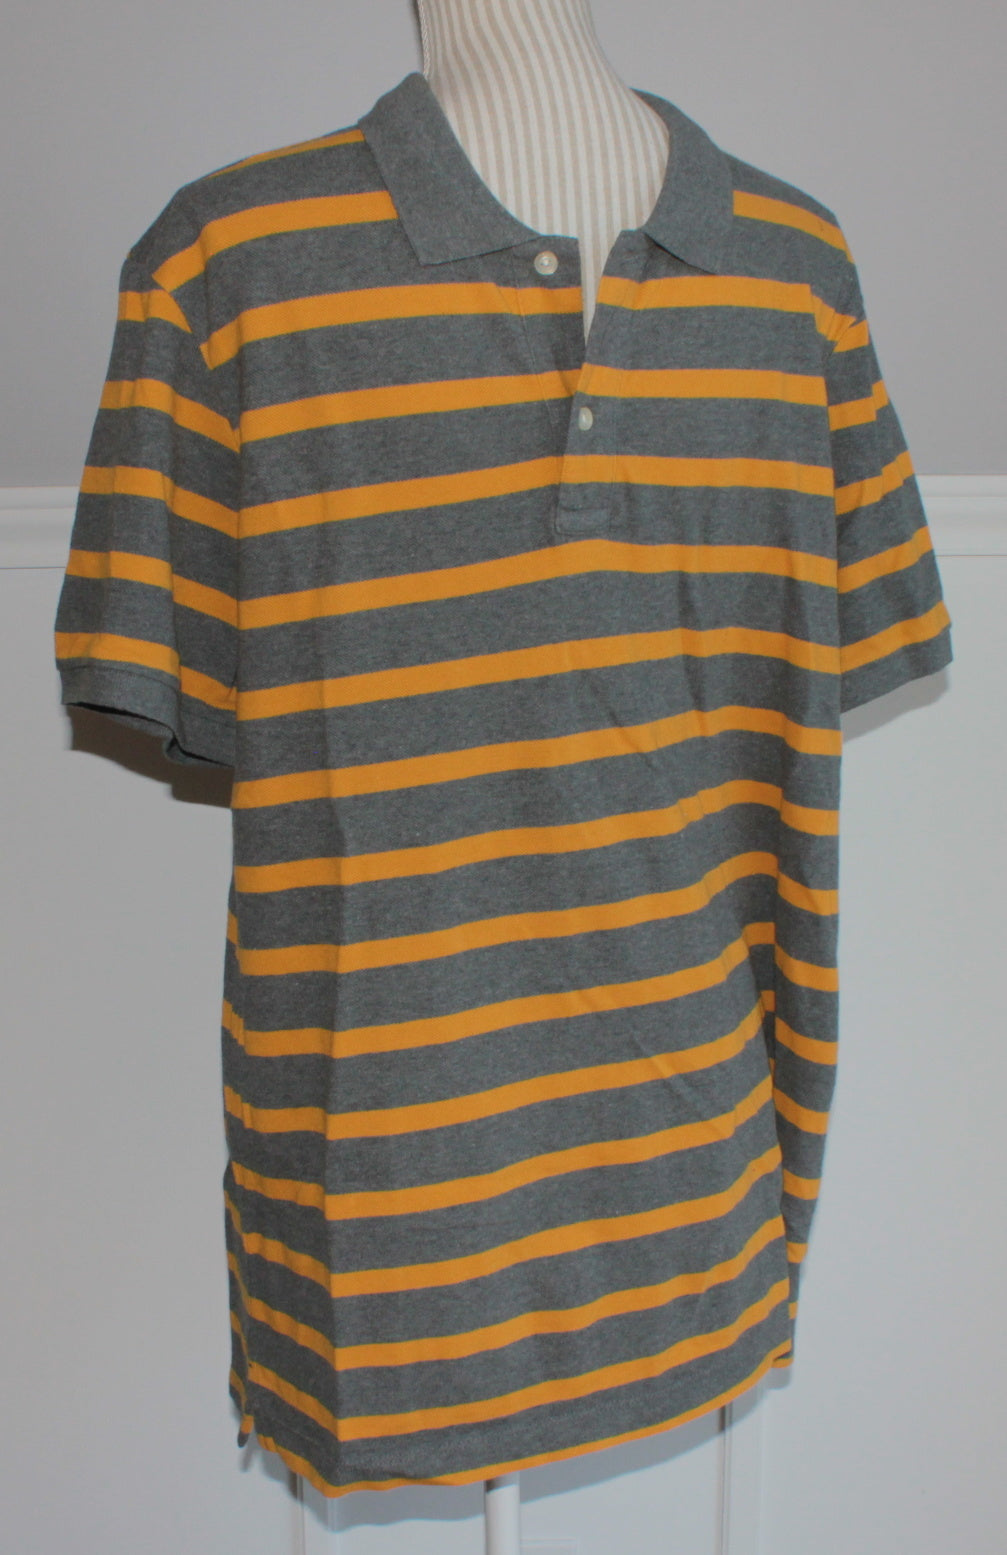 GAP GREY/YELLOW STRIPED SL TOP MENS XL EUC